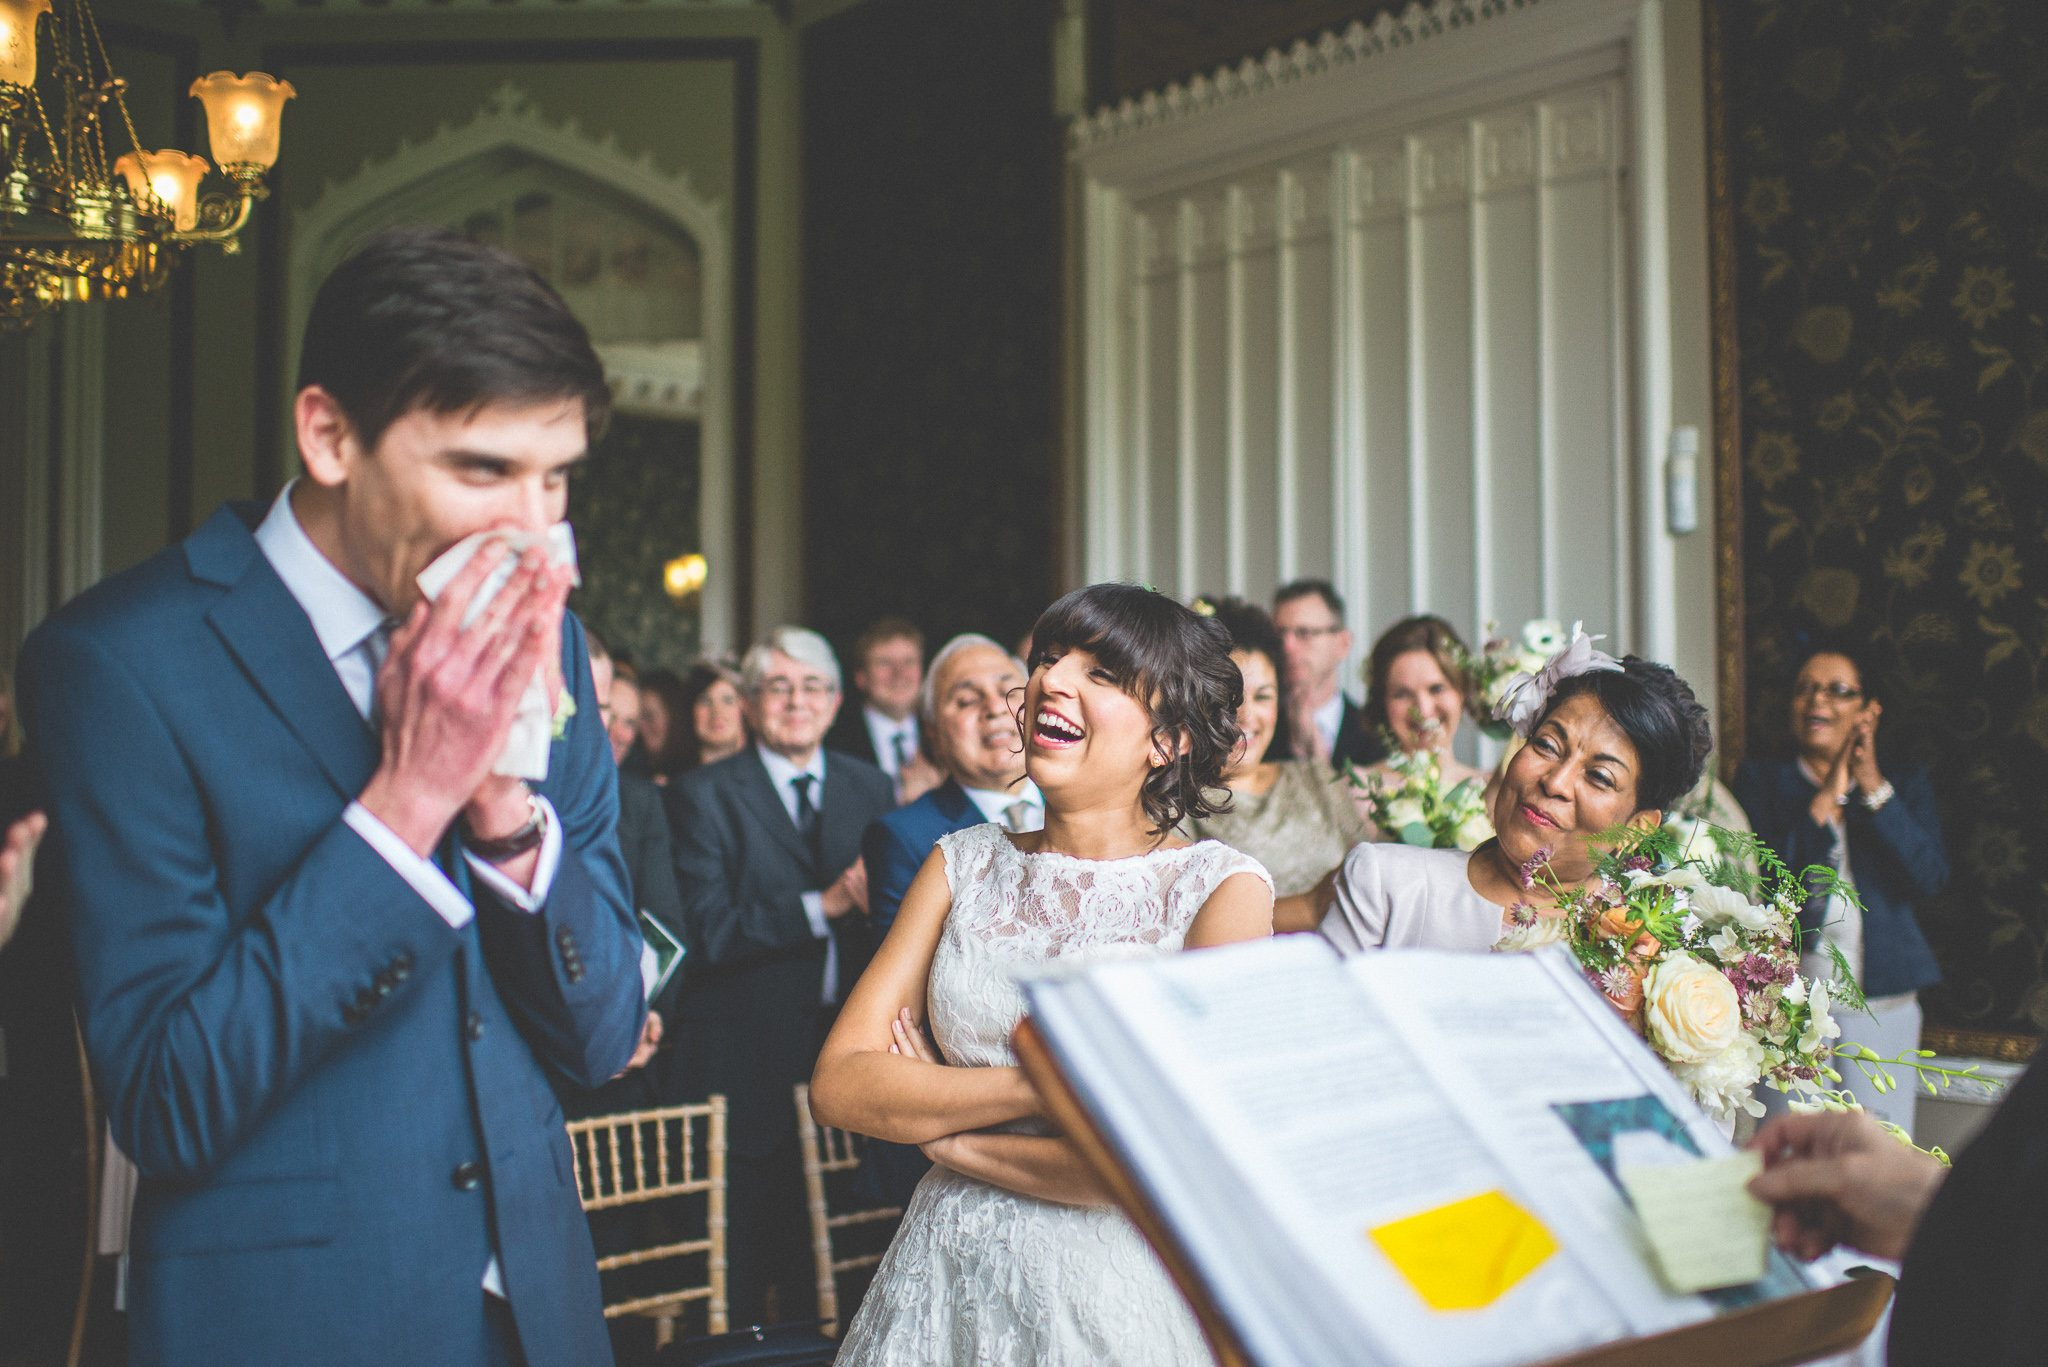 Groom Andy is overcome with emotion during the ceremony